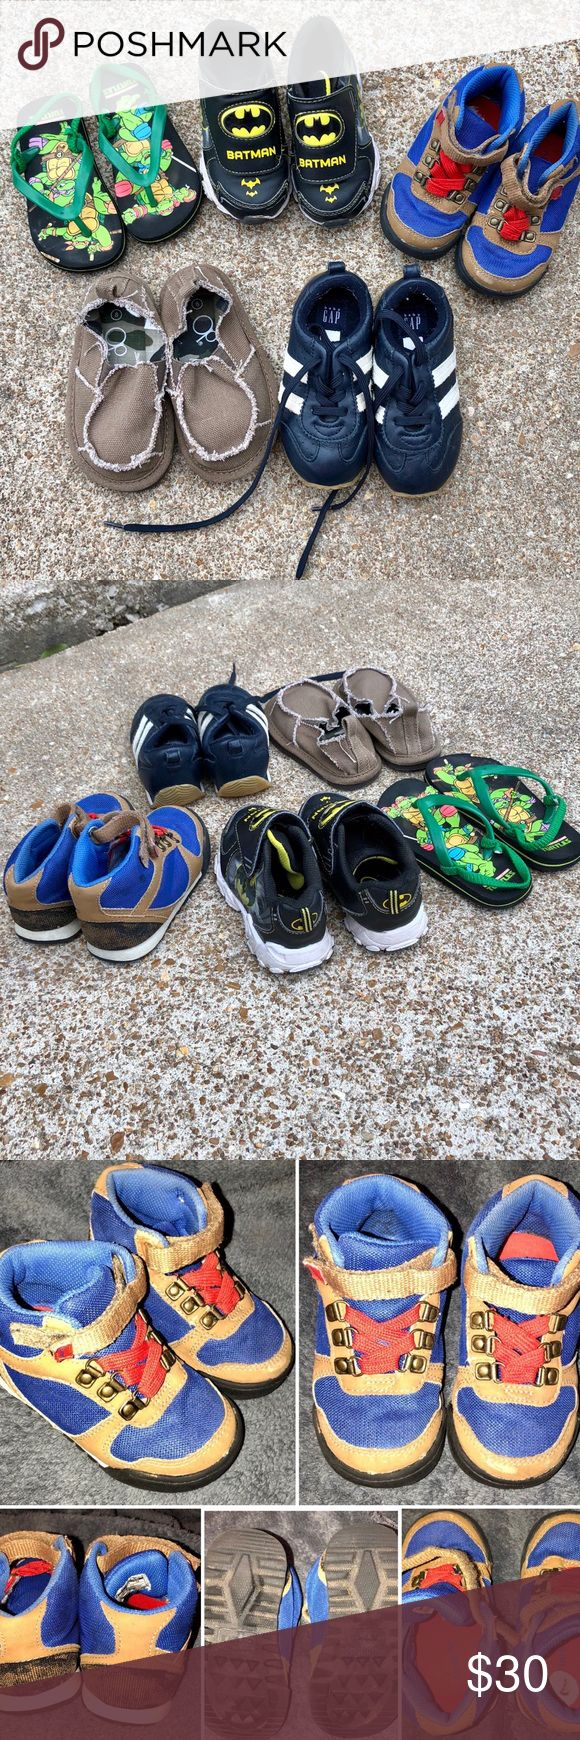 Toddler Boy Shoe Bundle *Carter's Blue, Tan, & Red Shoes: Size 7 -Okay condition! -Has some marks on the top part of Shoes (shown in pics)  *Teenage Mutant Ninja Turtle Toddler Flip Flops: Size 7/8  -Good condition!  *Baby Gap Navy Blue Toddler Sneakers: Size 9 -Good condition!  *Batman Toddler Light-Up Sneakers: Size 8 -Good condition! -Batman symbol in front of shoe lights up red!  *Op Toddler Shoes: Size 8 -Excellent condition! Shoes